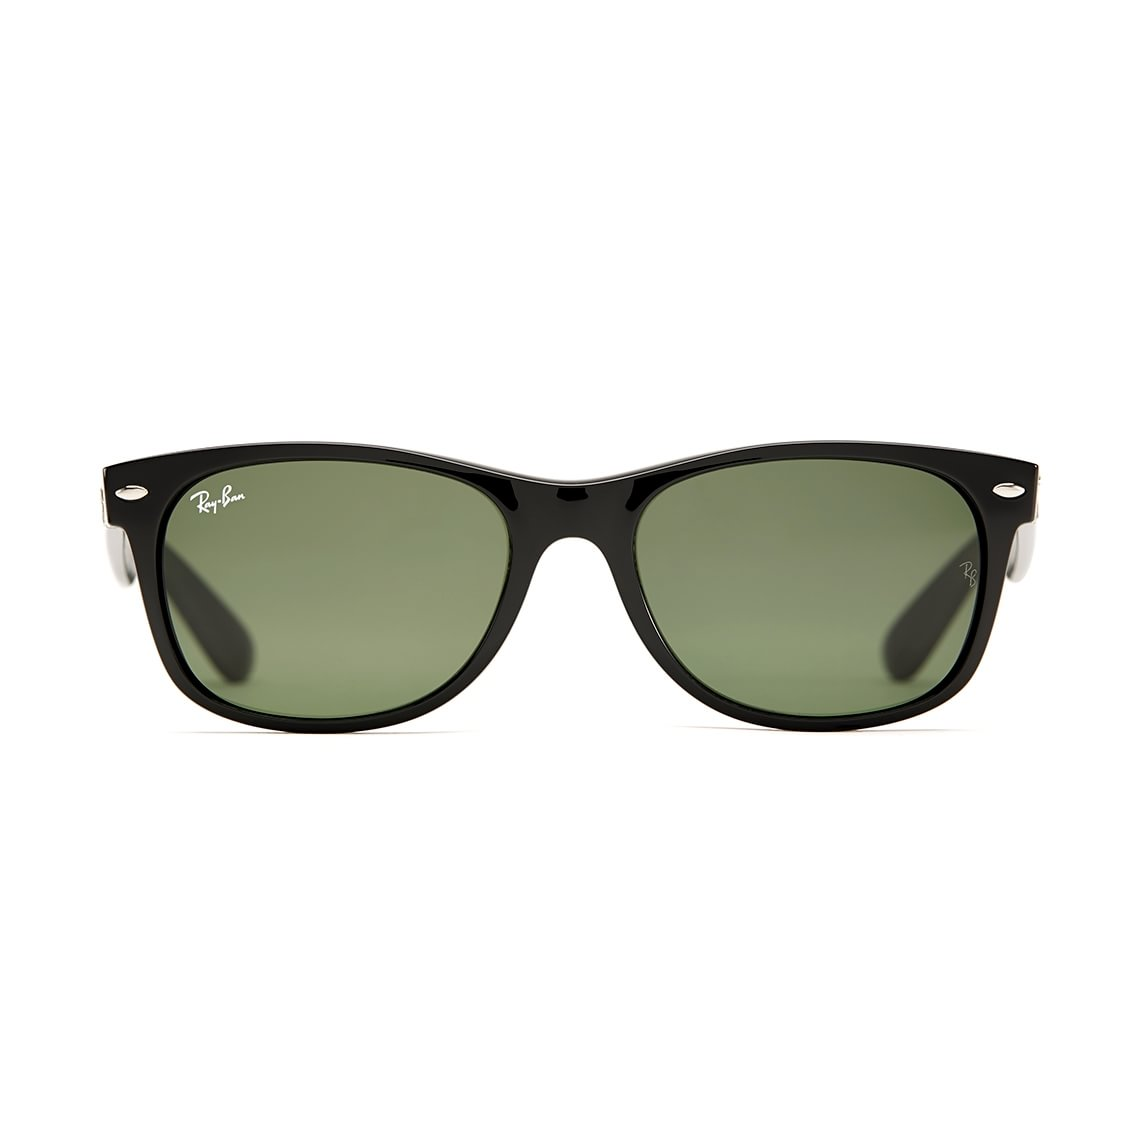 Ray-Ban New Wayfarer RB2132 901L 55